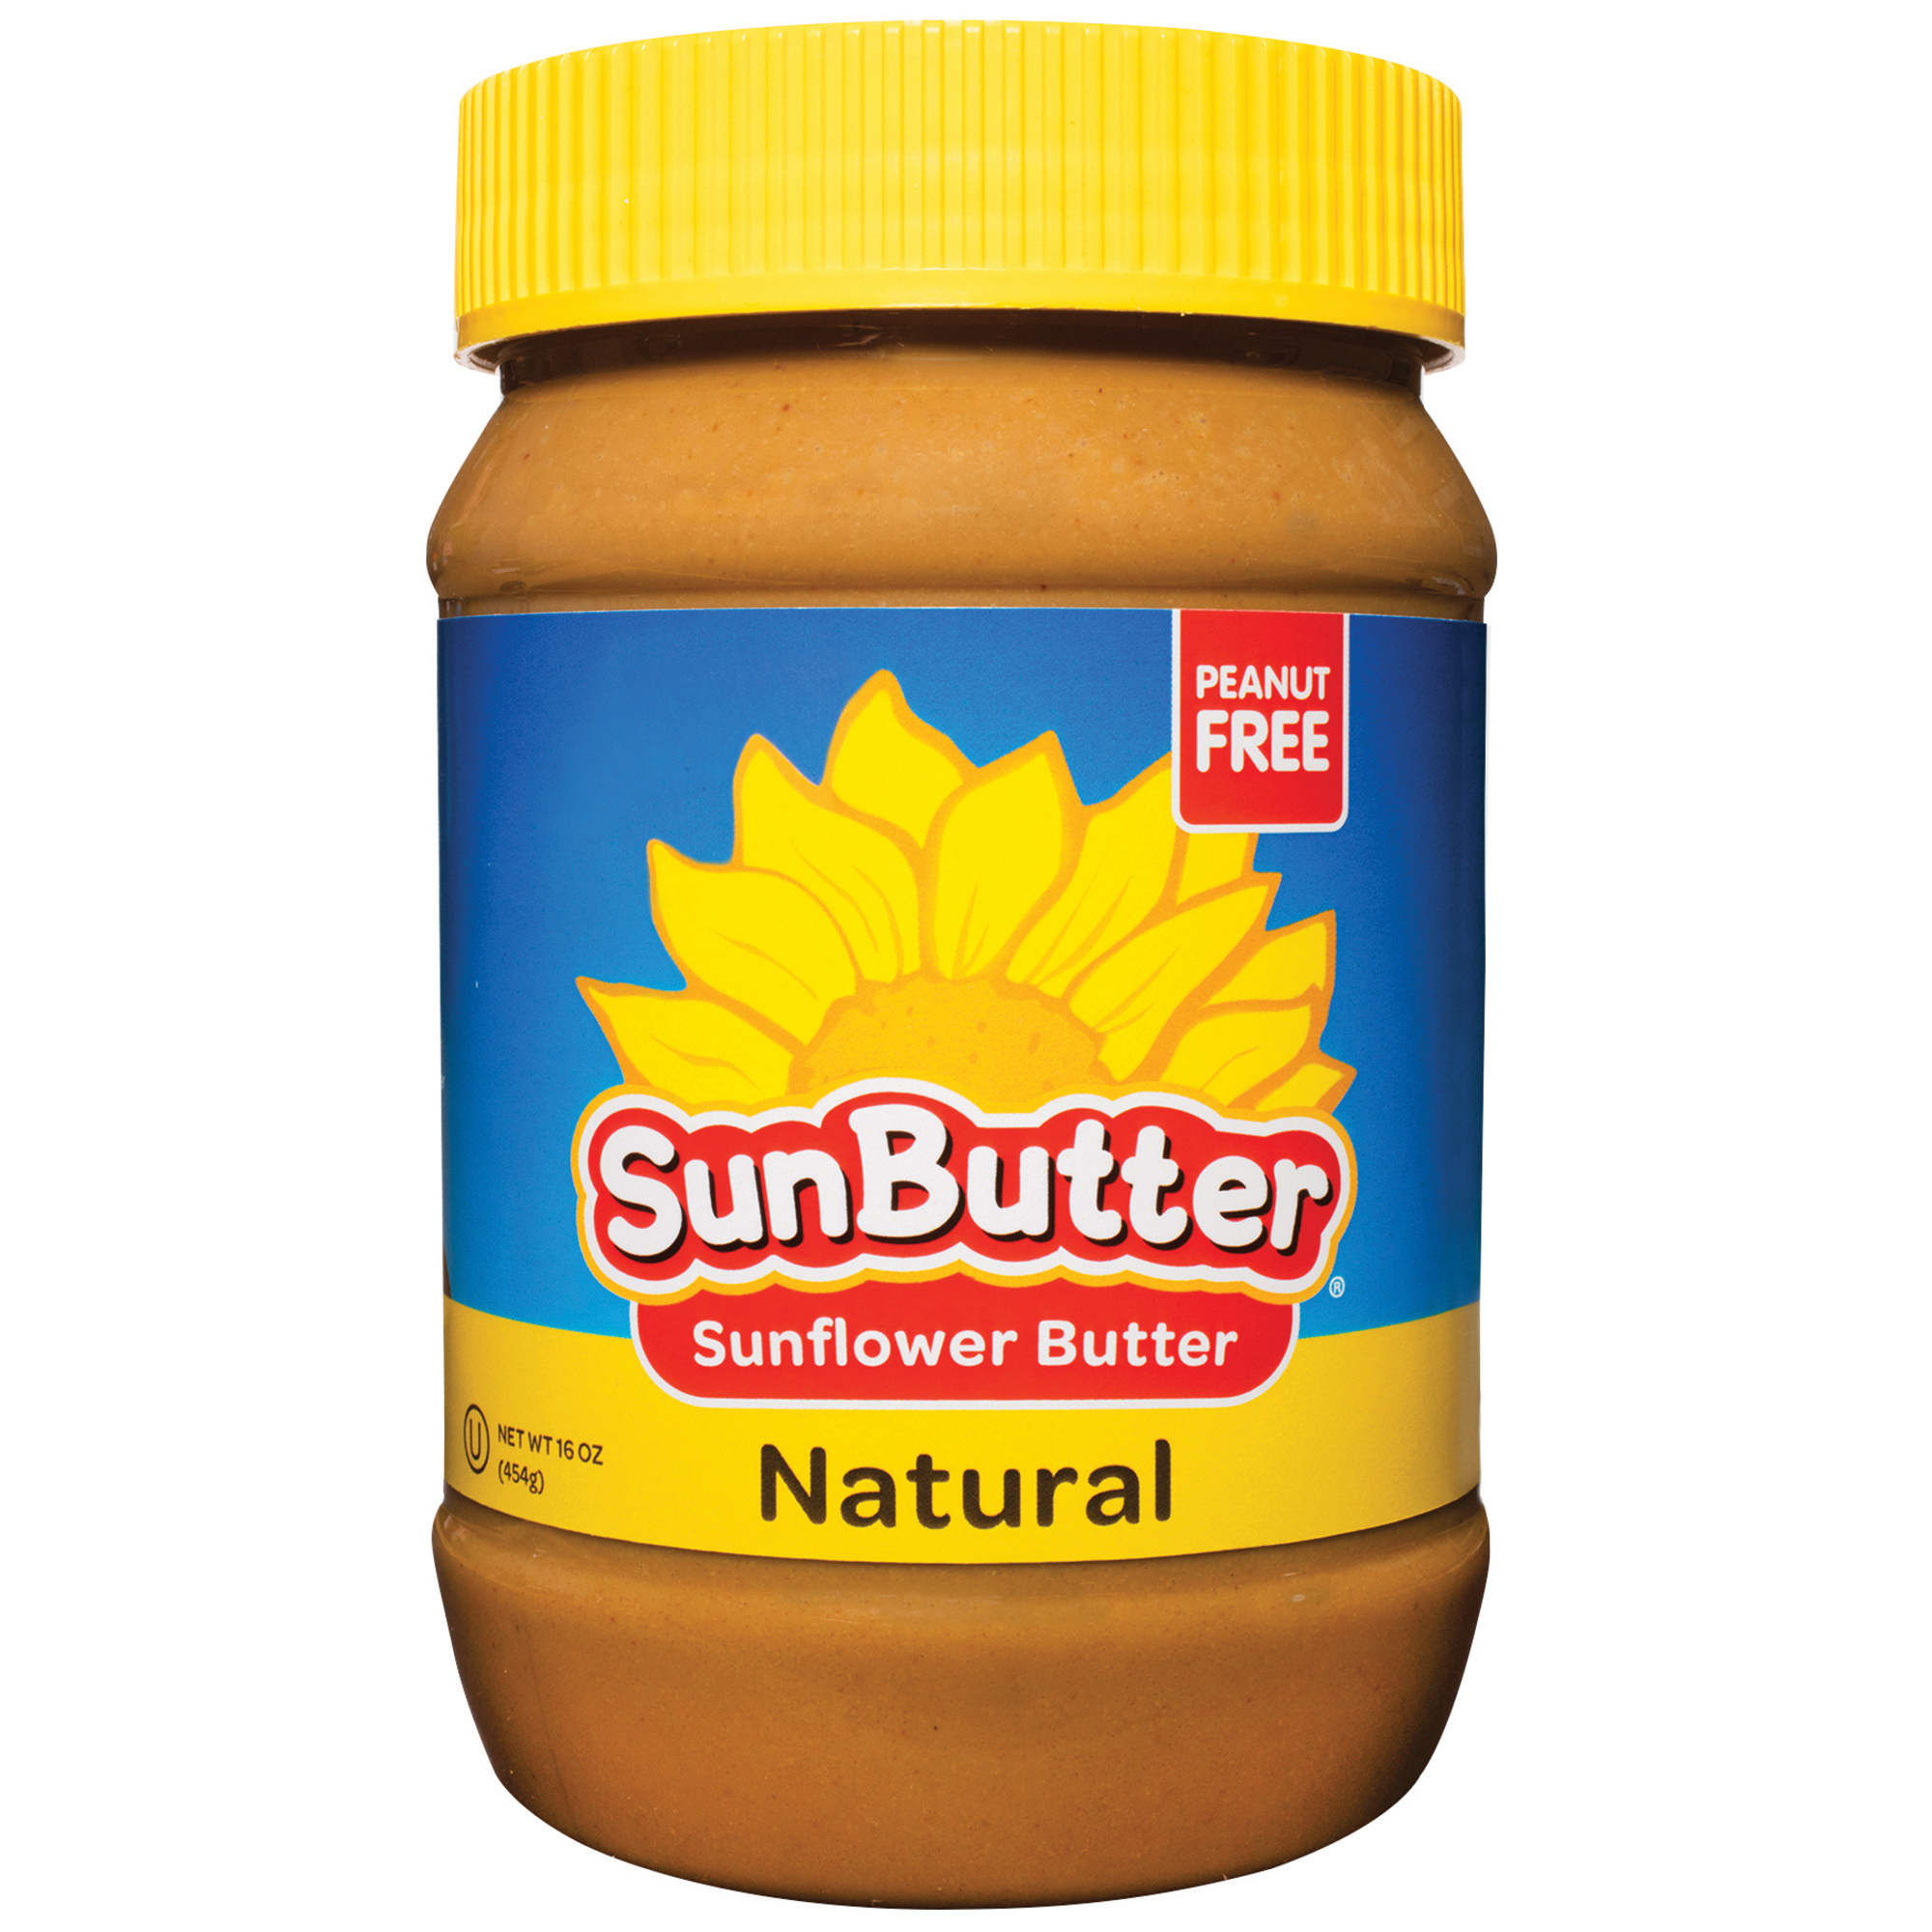 Sunbutter Natural Sunflower Seed Spread, 16 oz (Pack of 6)